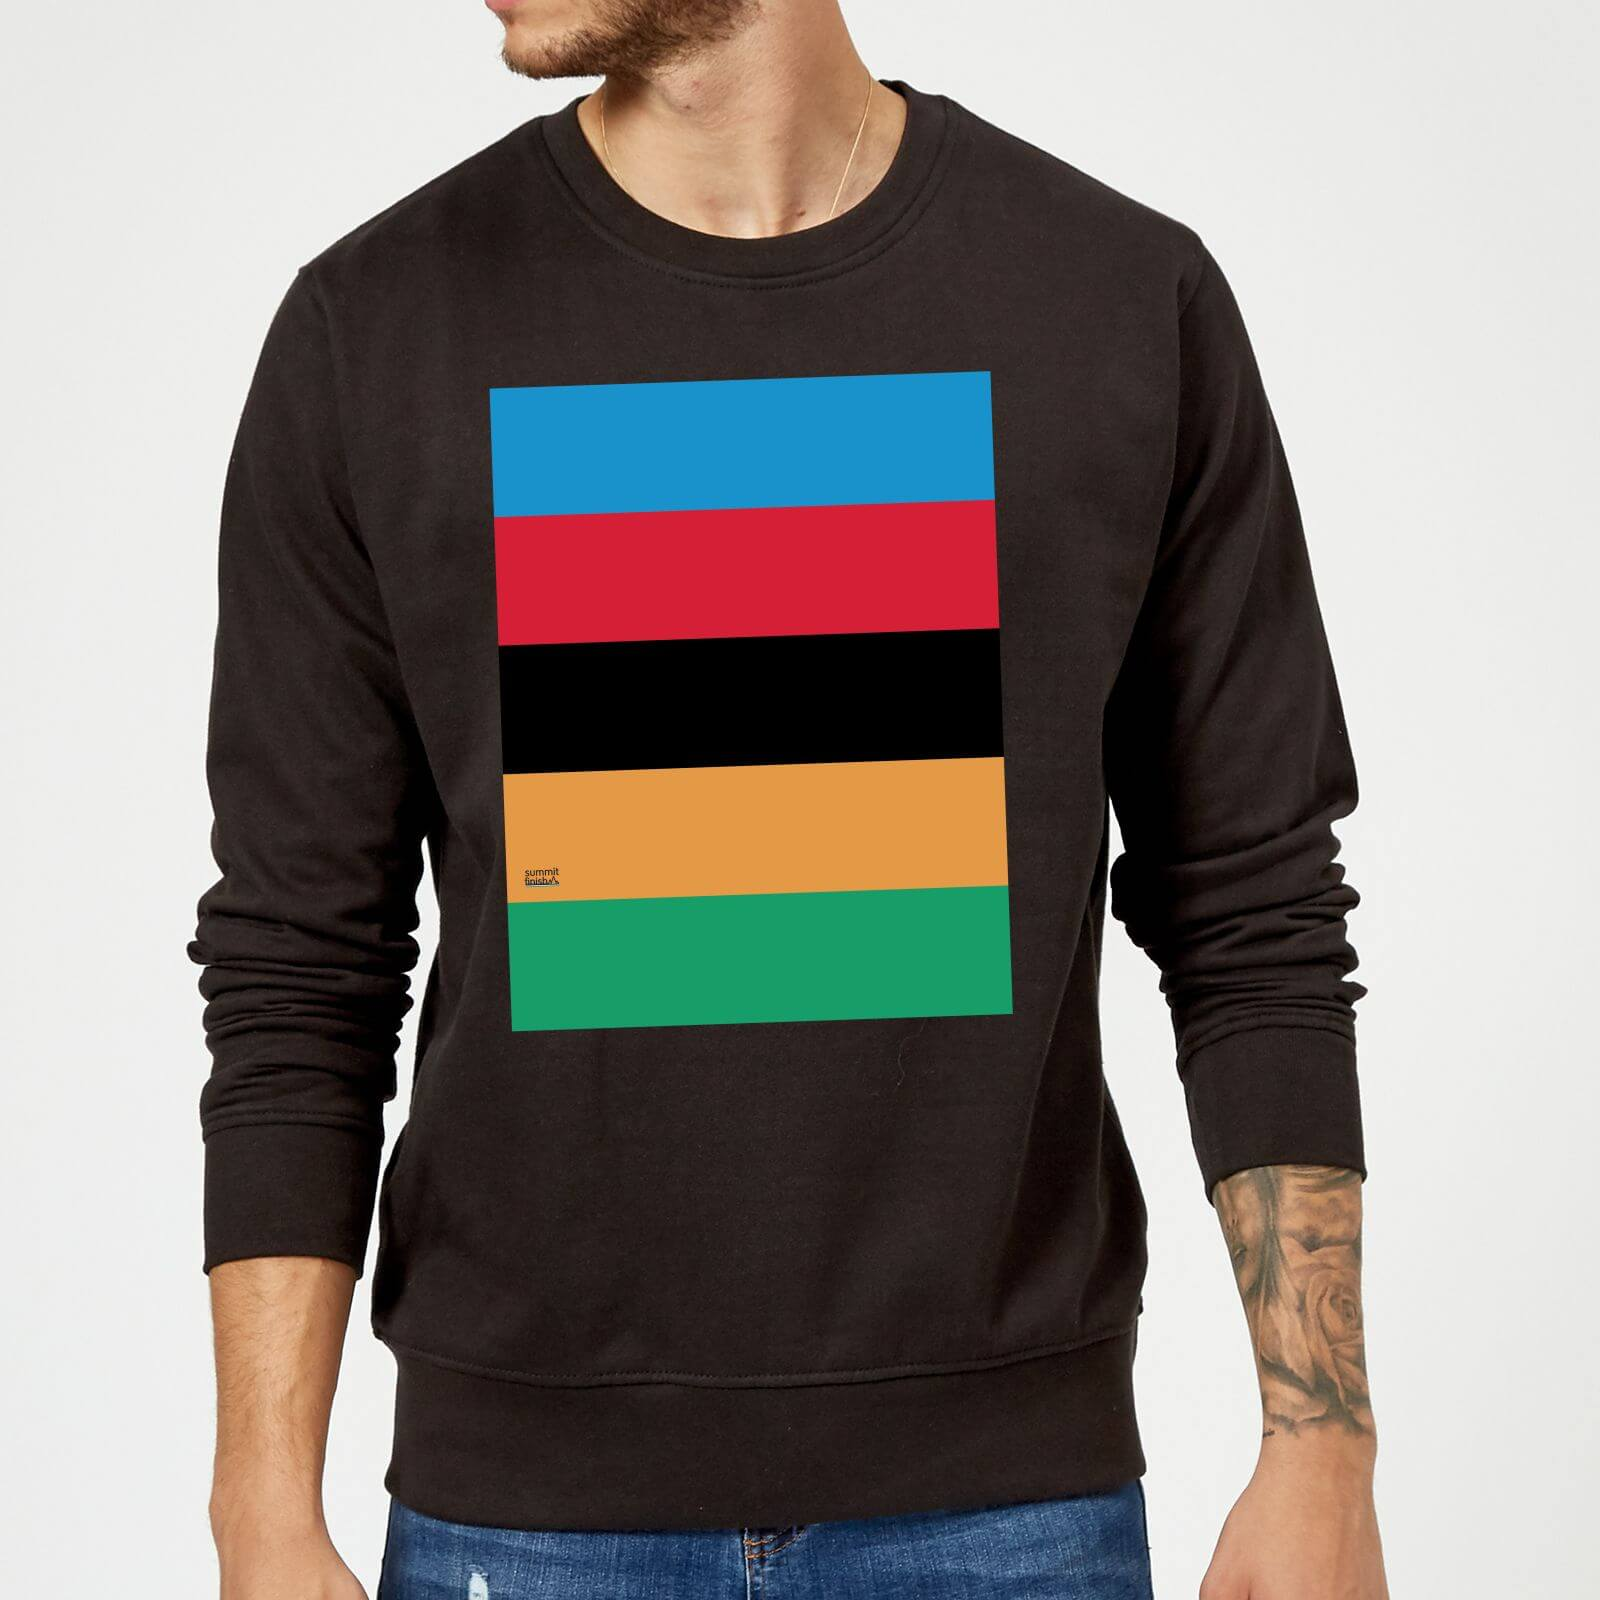 Summit Finish World Champion Stripes Sweatshirt - Black | Trøjer